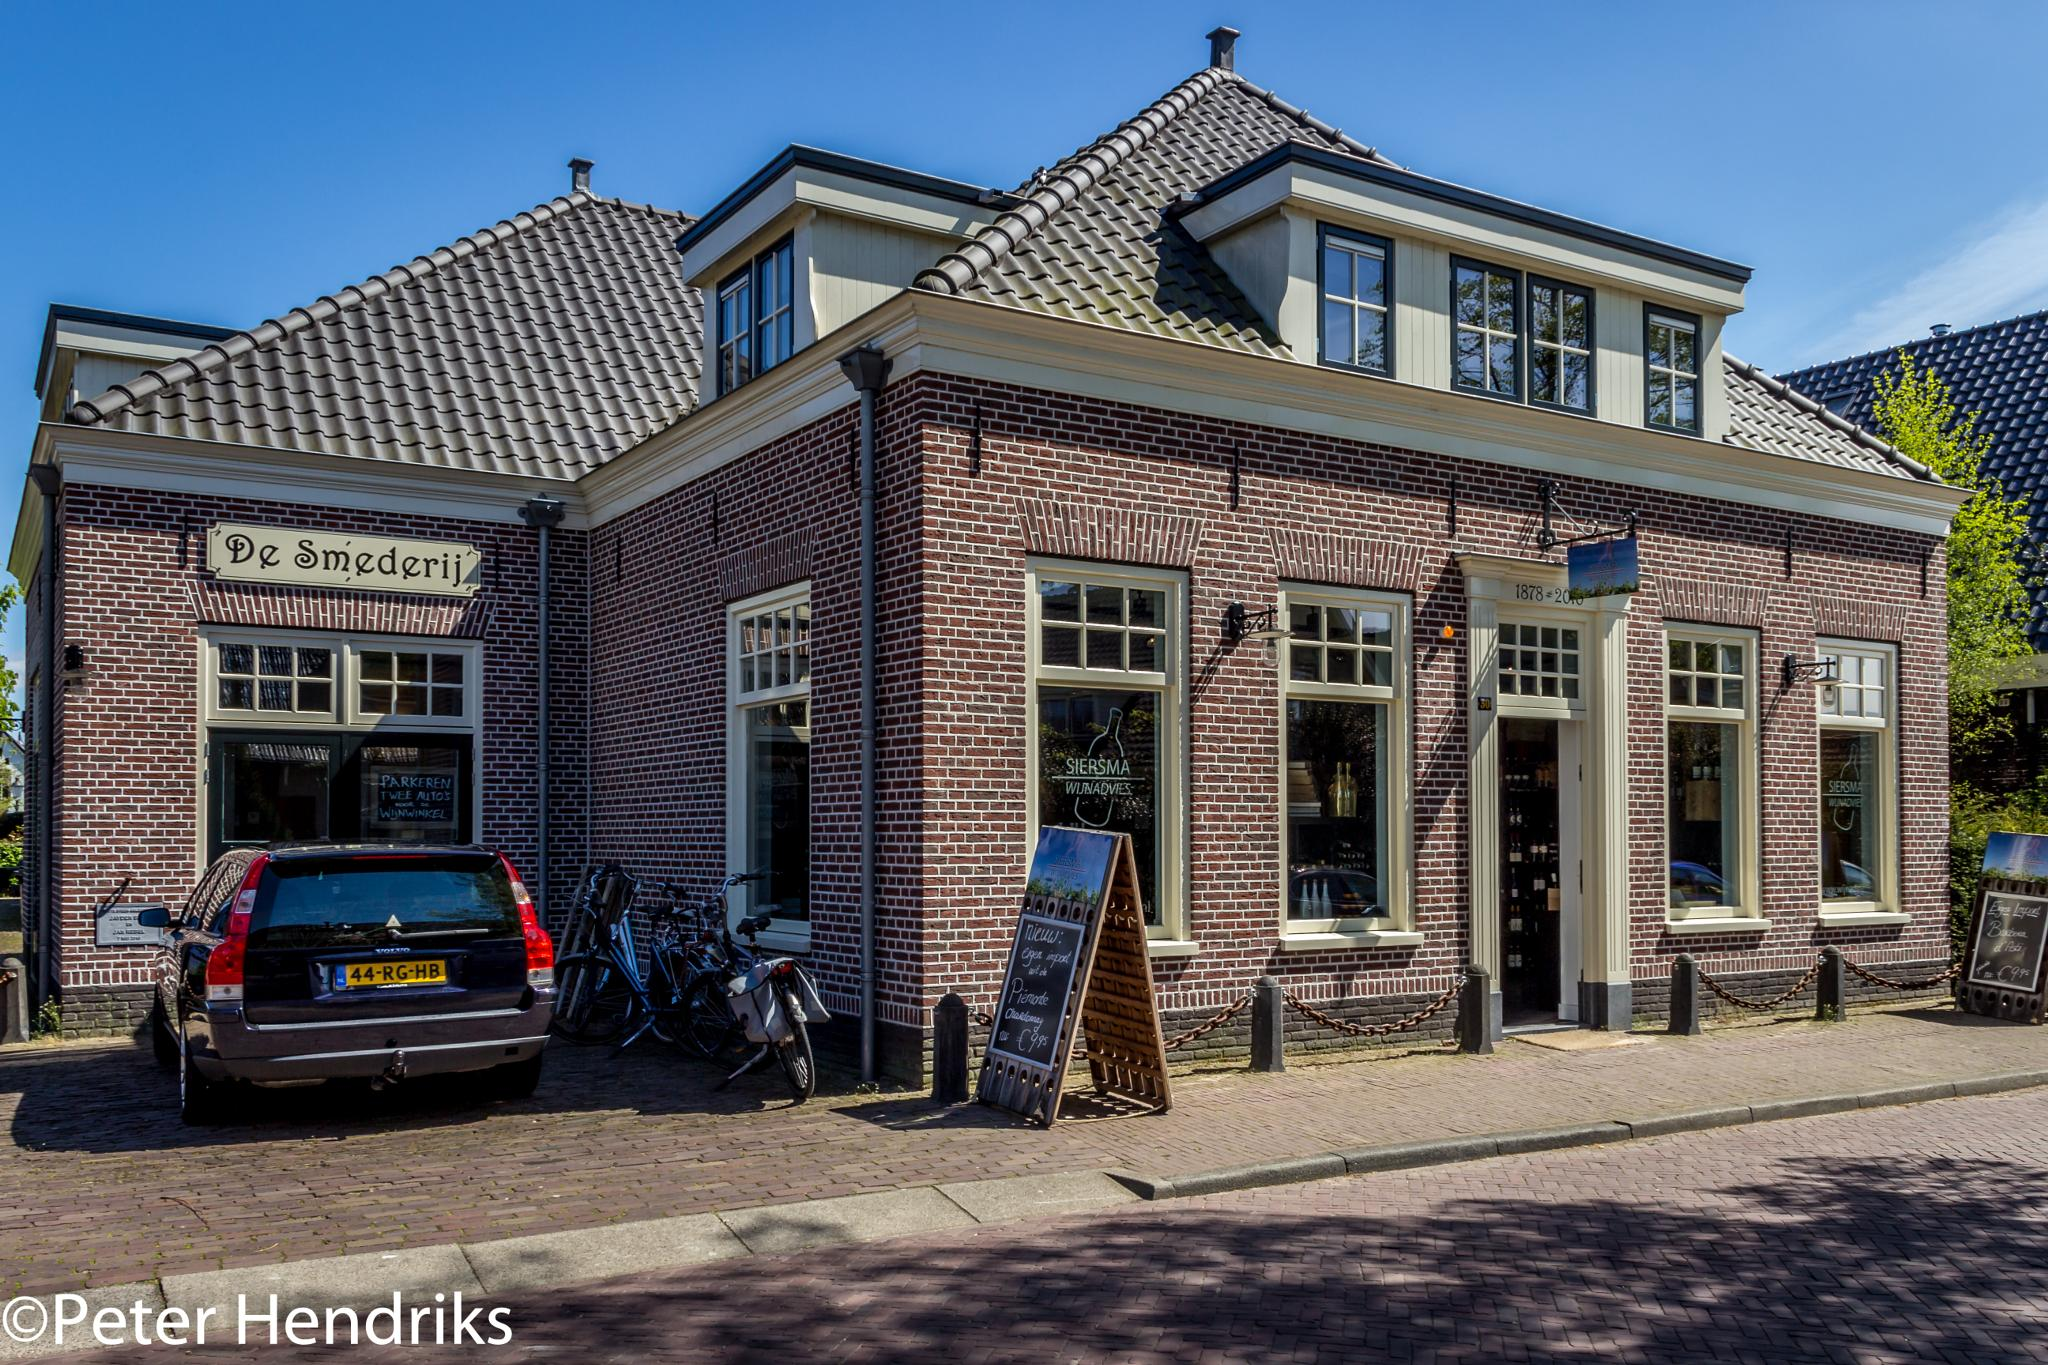 A sunny afternoon in Huizen by Peter Hendriks